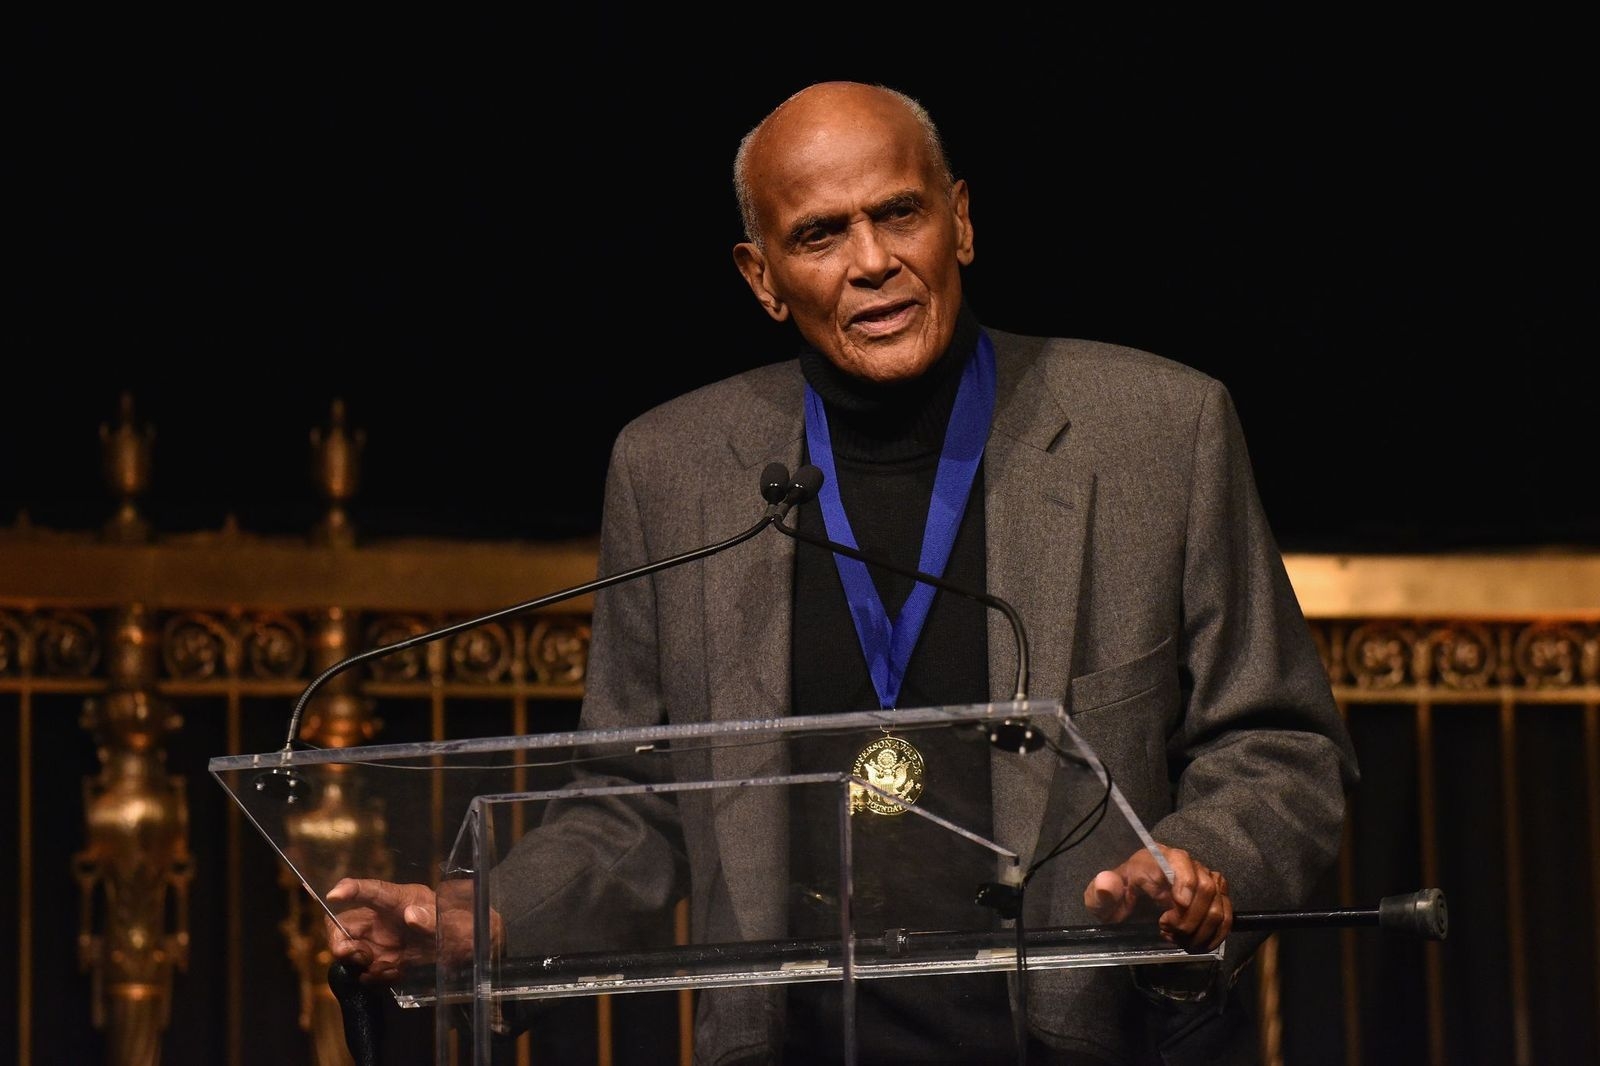 Harry Belafonte receives The Lifetime Achievement Award during the Jefferson Awards FoundationNYC National Ceremony on March 15, 2017, in New York City | Photo:Bryan Bedder/Getty Images